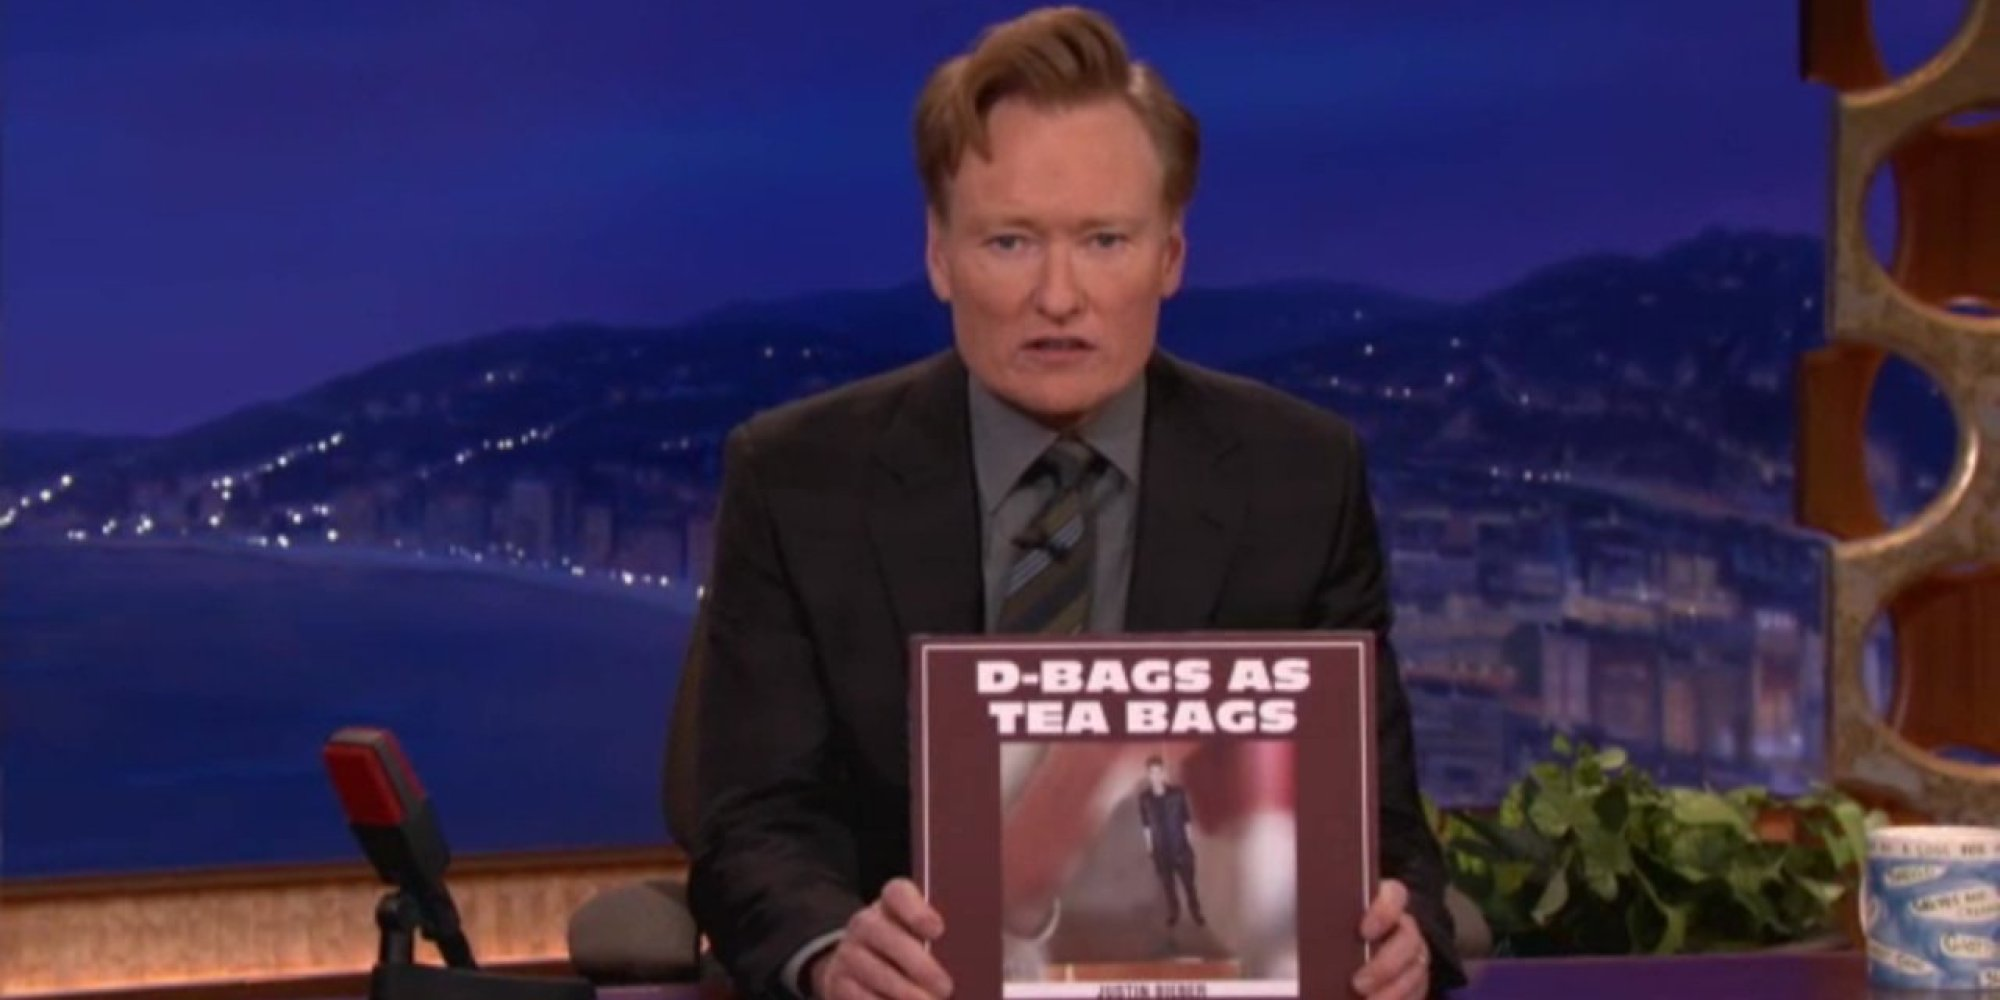 Charming Conan Coffee Table Books Part - 1: Conan Finds The Funniest Coffee Table Books That Didnu0027t Sell | HuffPost